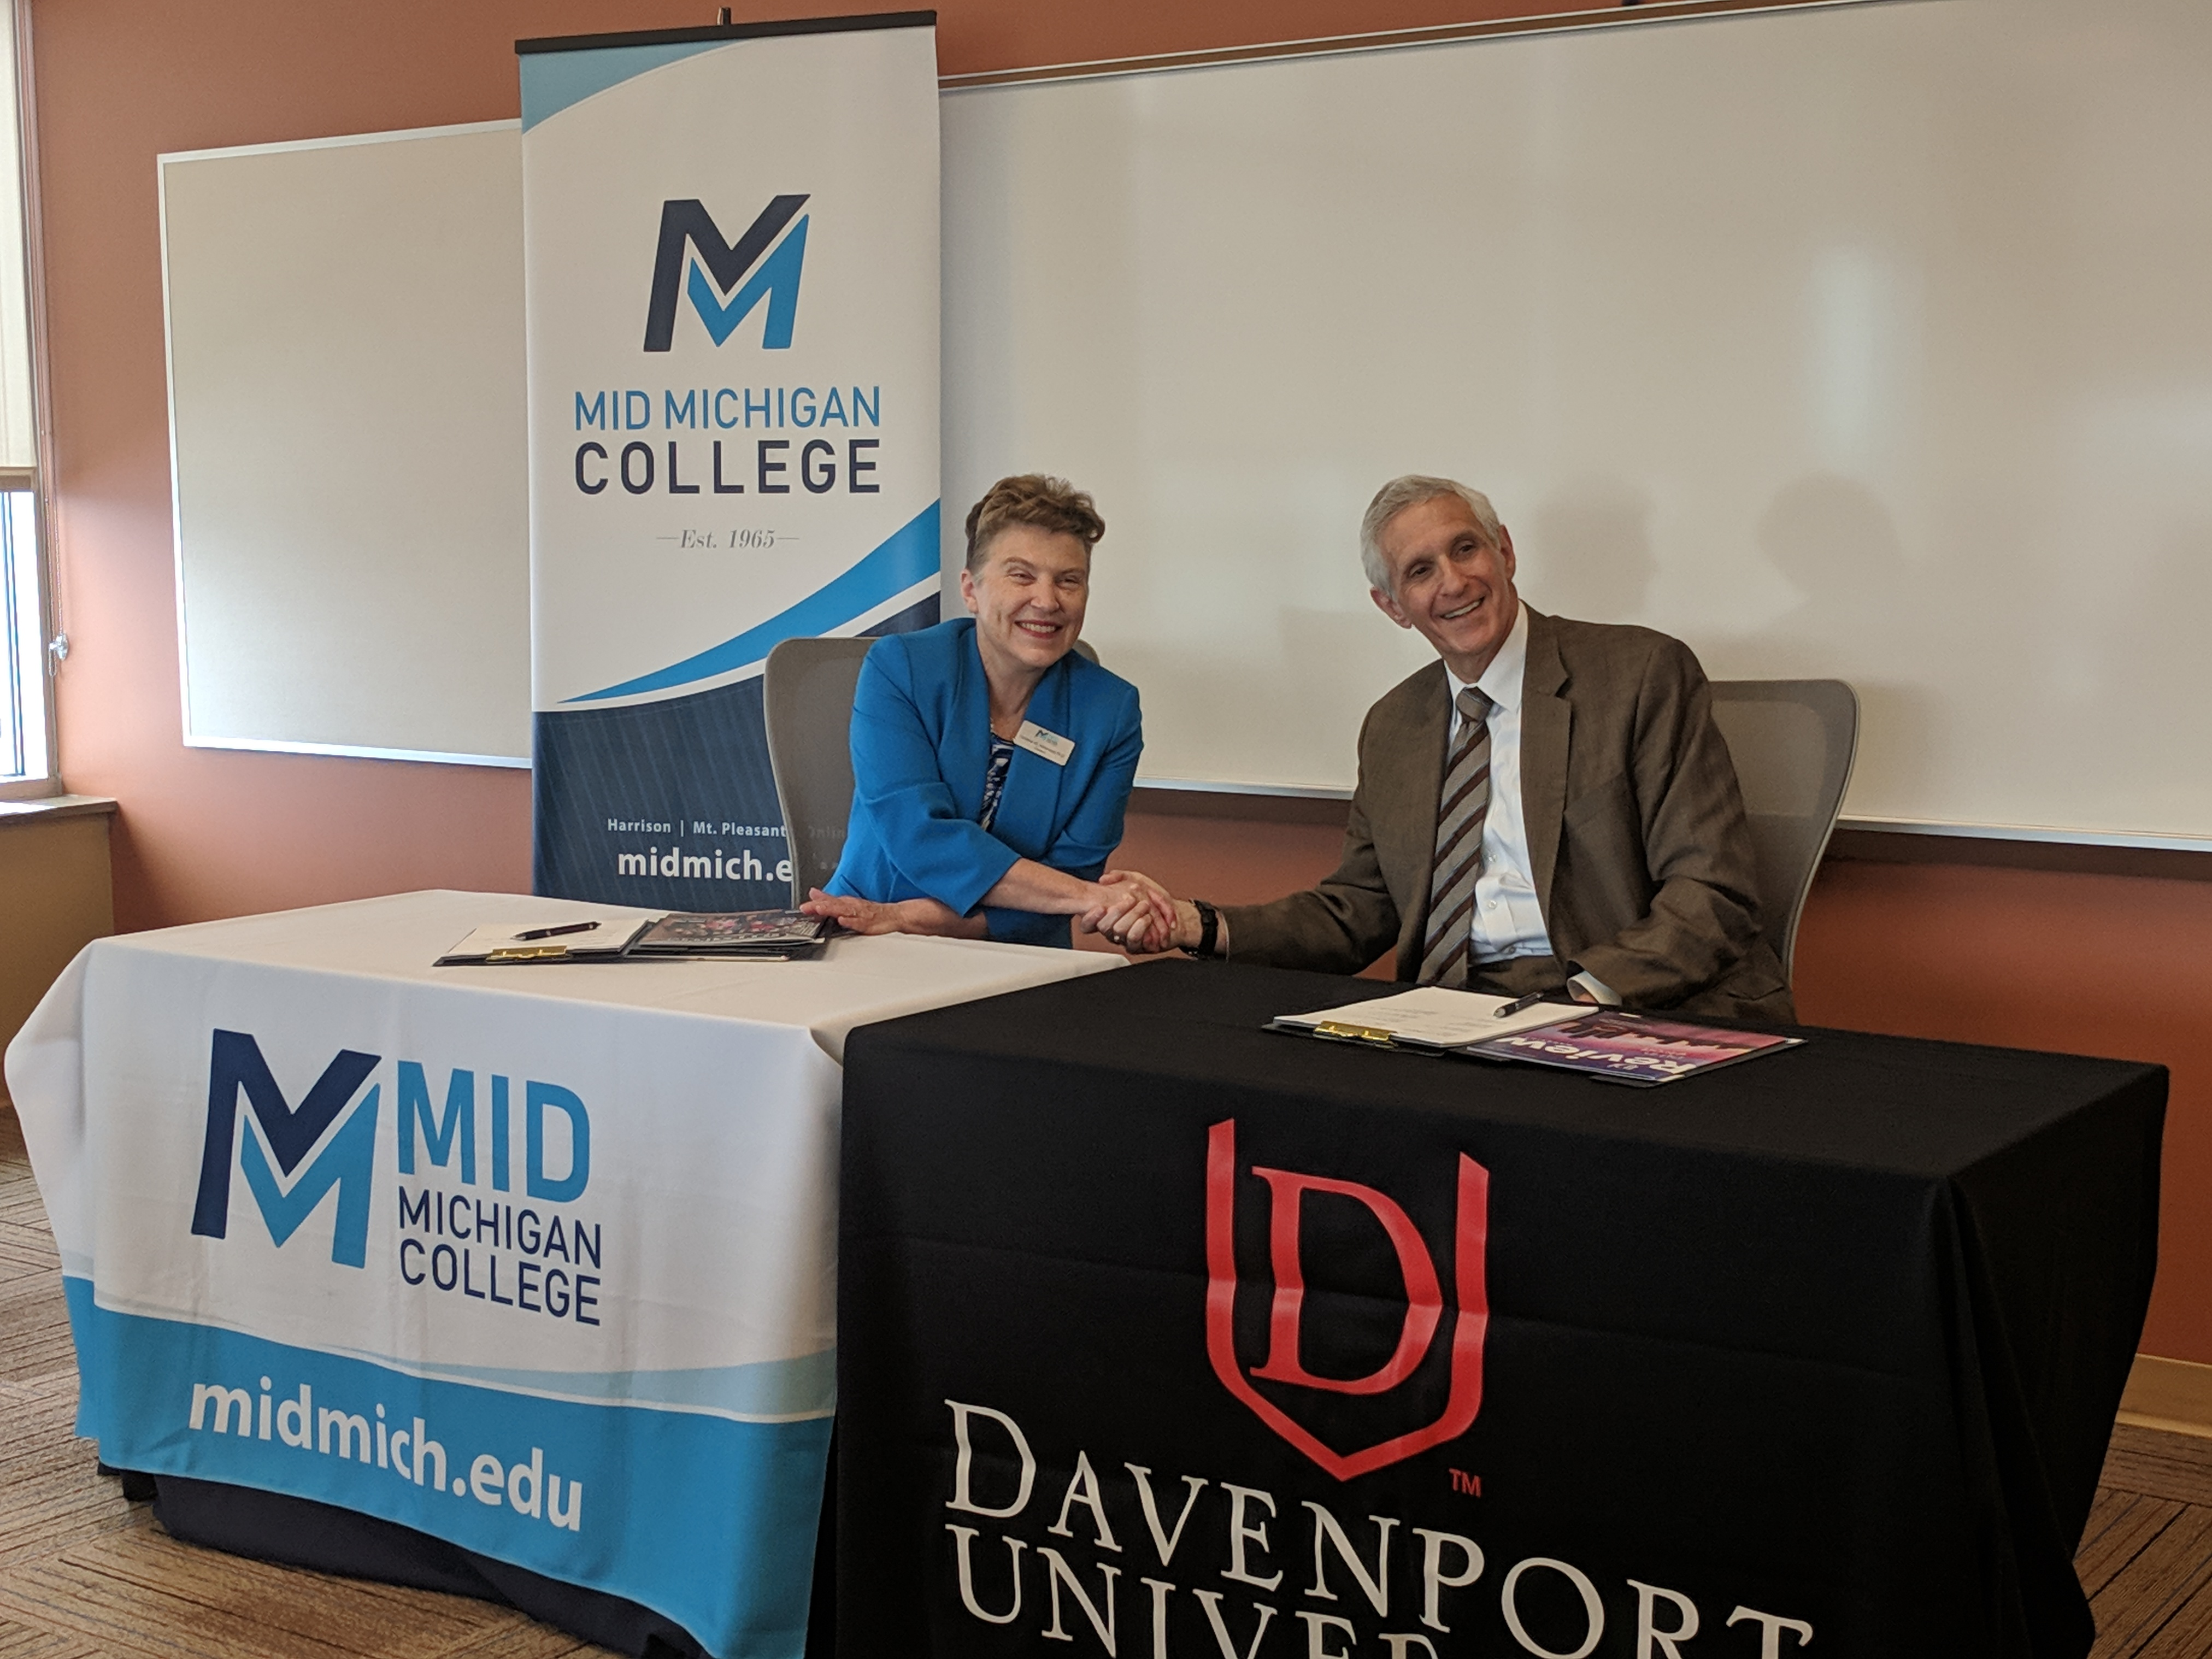 The Presidents of Mid Michigan College and Davenport University sign an academic agreement.